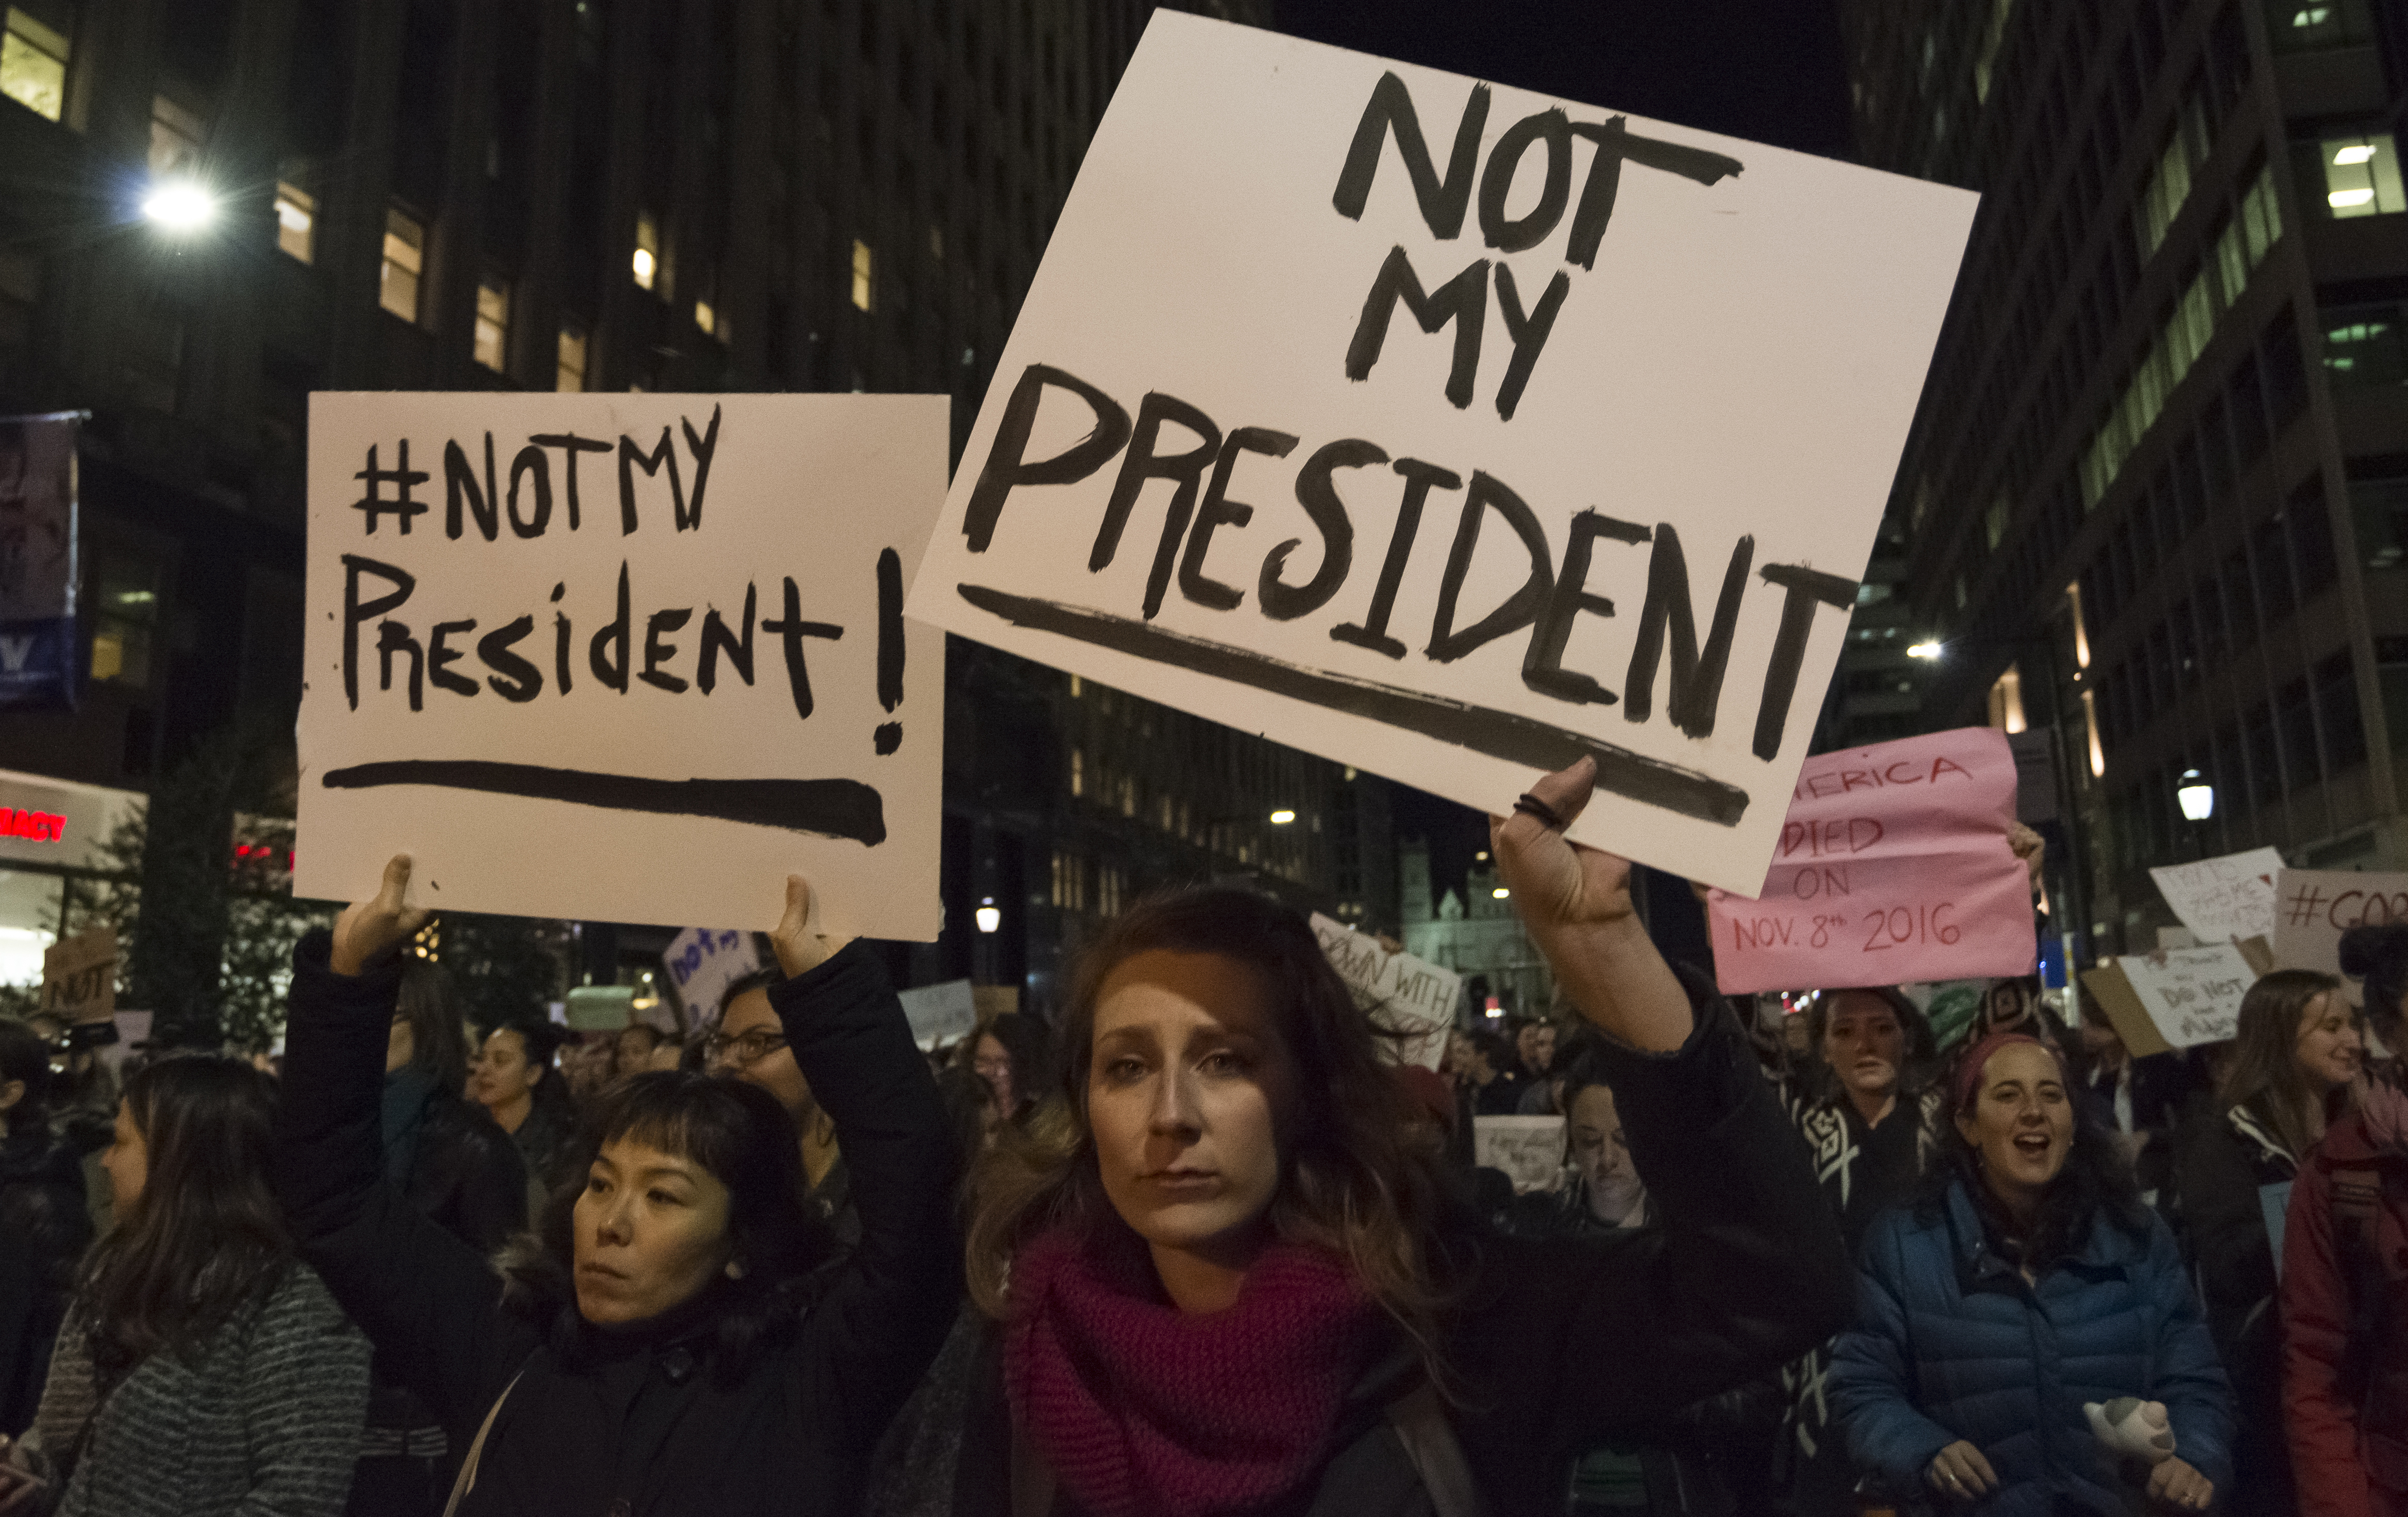 Demonstrators stage a n protest decrying the political agenda of President-elect Donald J. Trump.